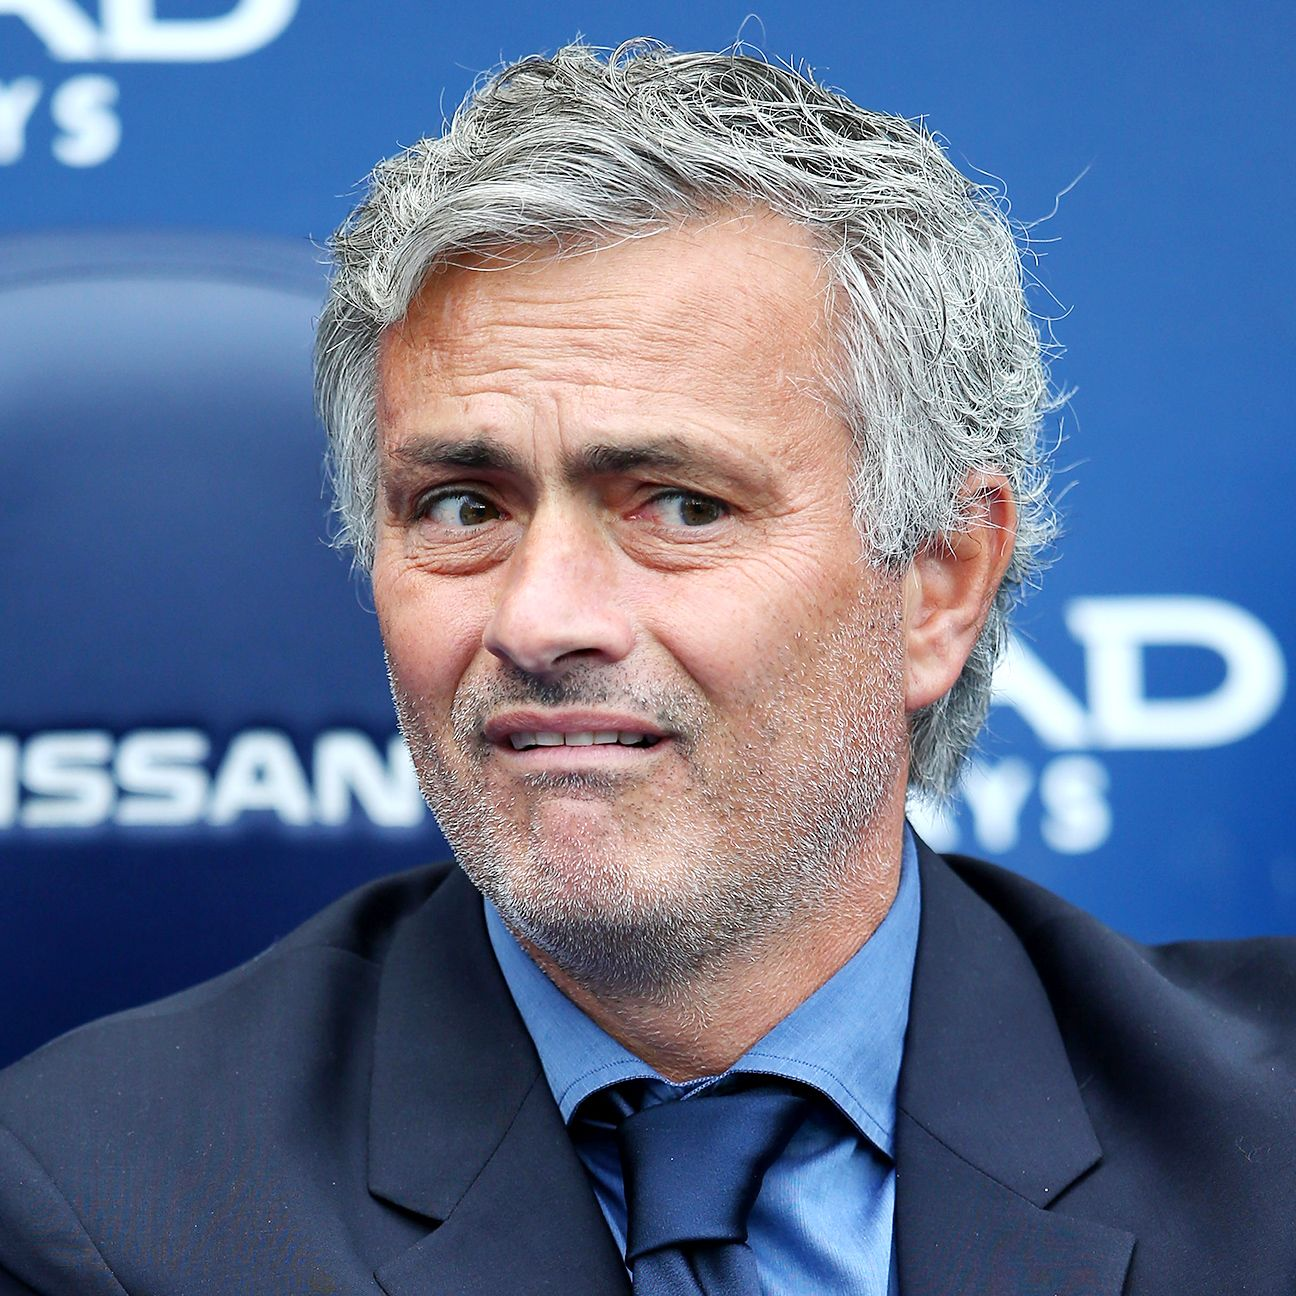 Year three of Jose Mourinho 2.0 at Chelsea is off to a frightful start.